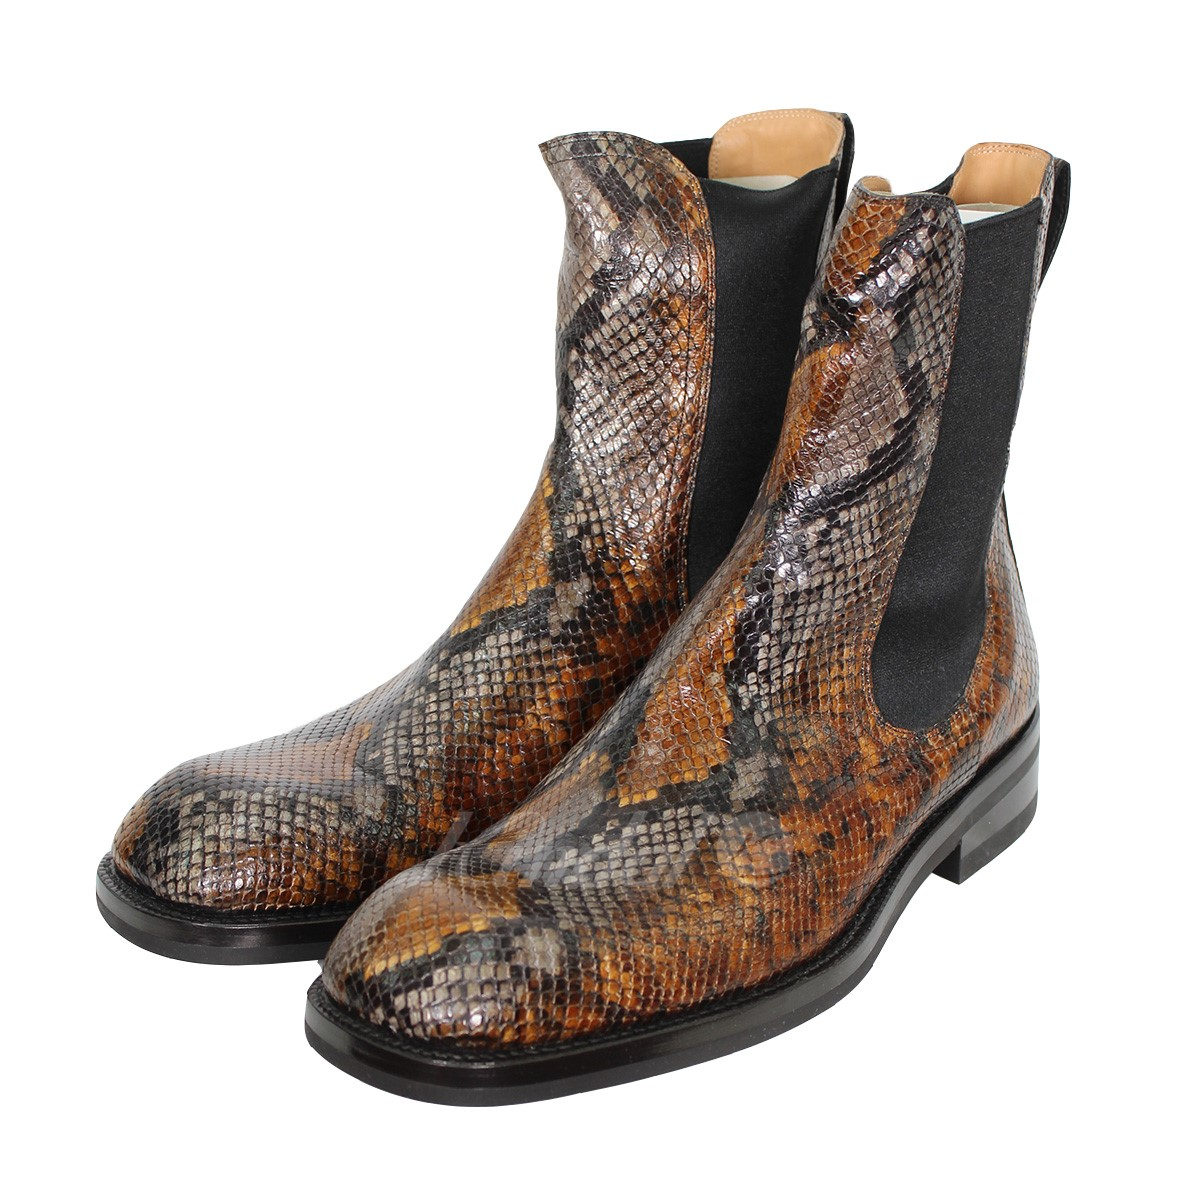 cedf91ddc19 DRIES VAN NOTEN Square Toe Chelsea Boot python leather side Gore boots  brown size: 44 (ドリスヴァンノッテン)